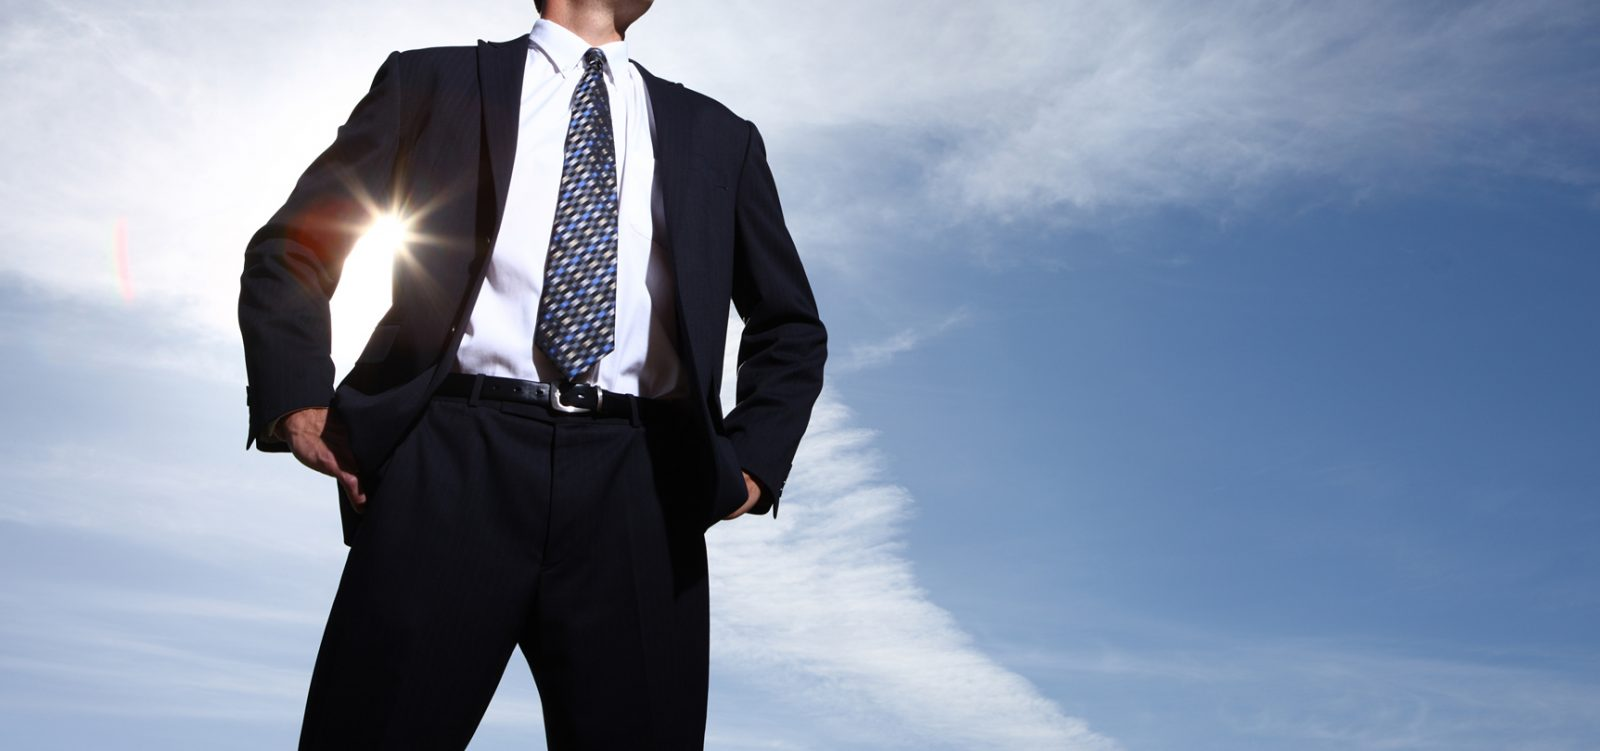 Qualities You Need to Become a Great Business Leader